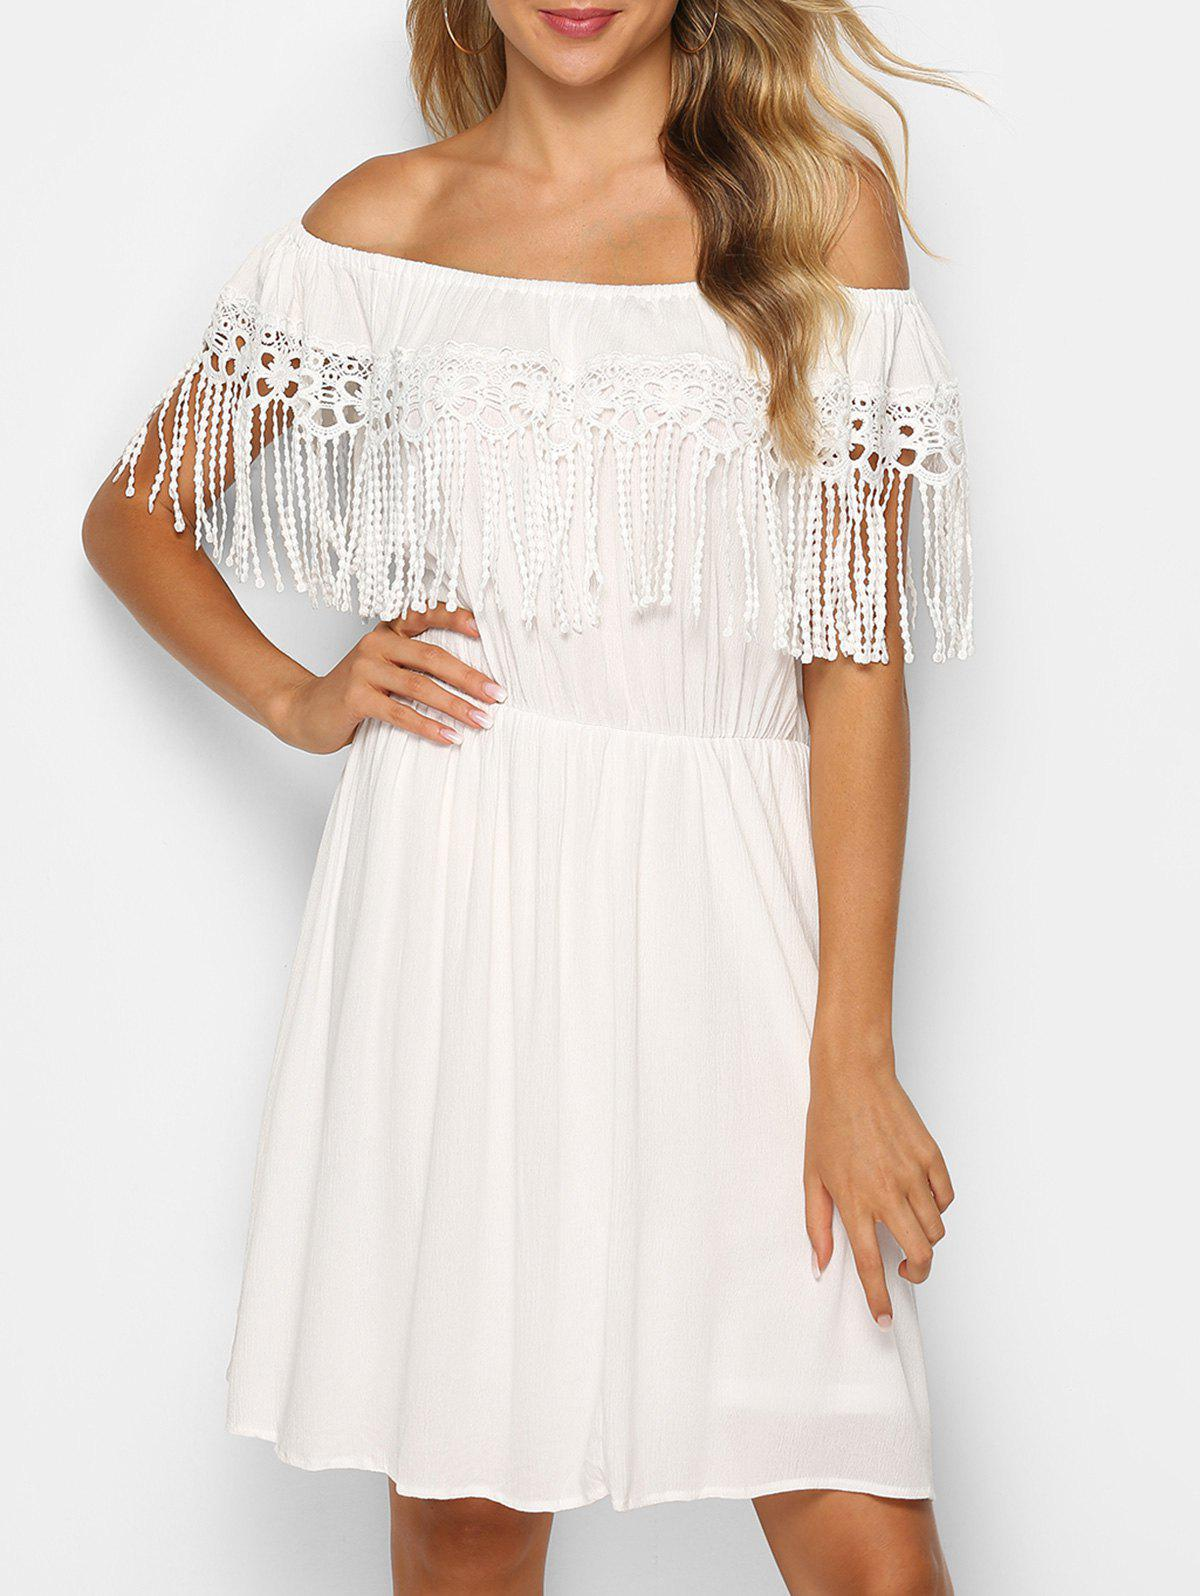 Off The Shoulder Fringed Lace Insert Dress - WHITE L